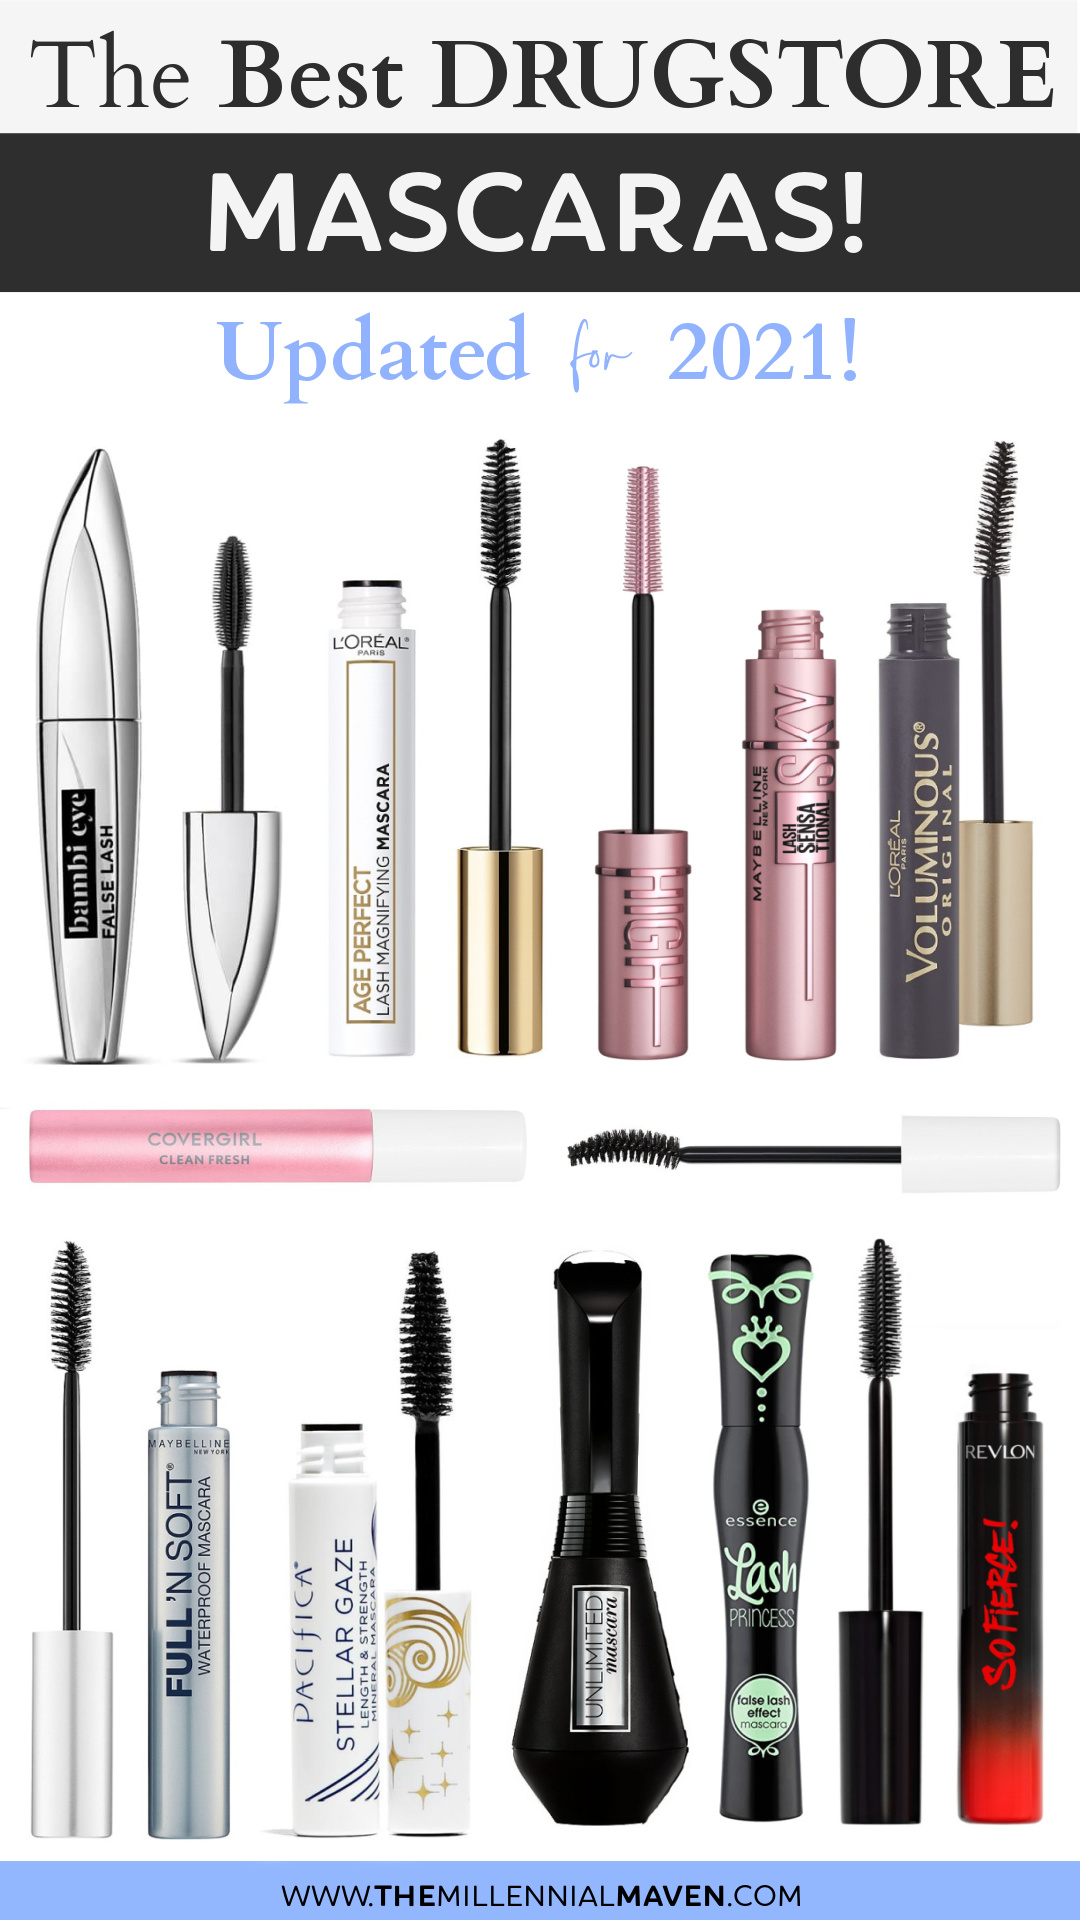 Top 10 Best Mascaras at the Drugstore in 2021! | Drugstore Mascaras